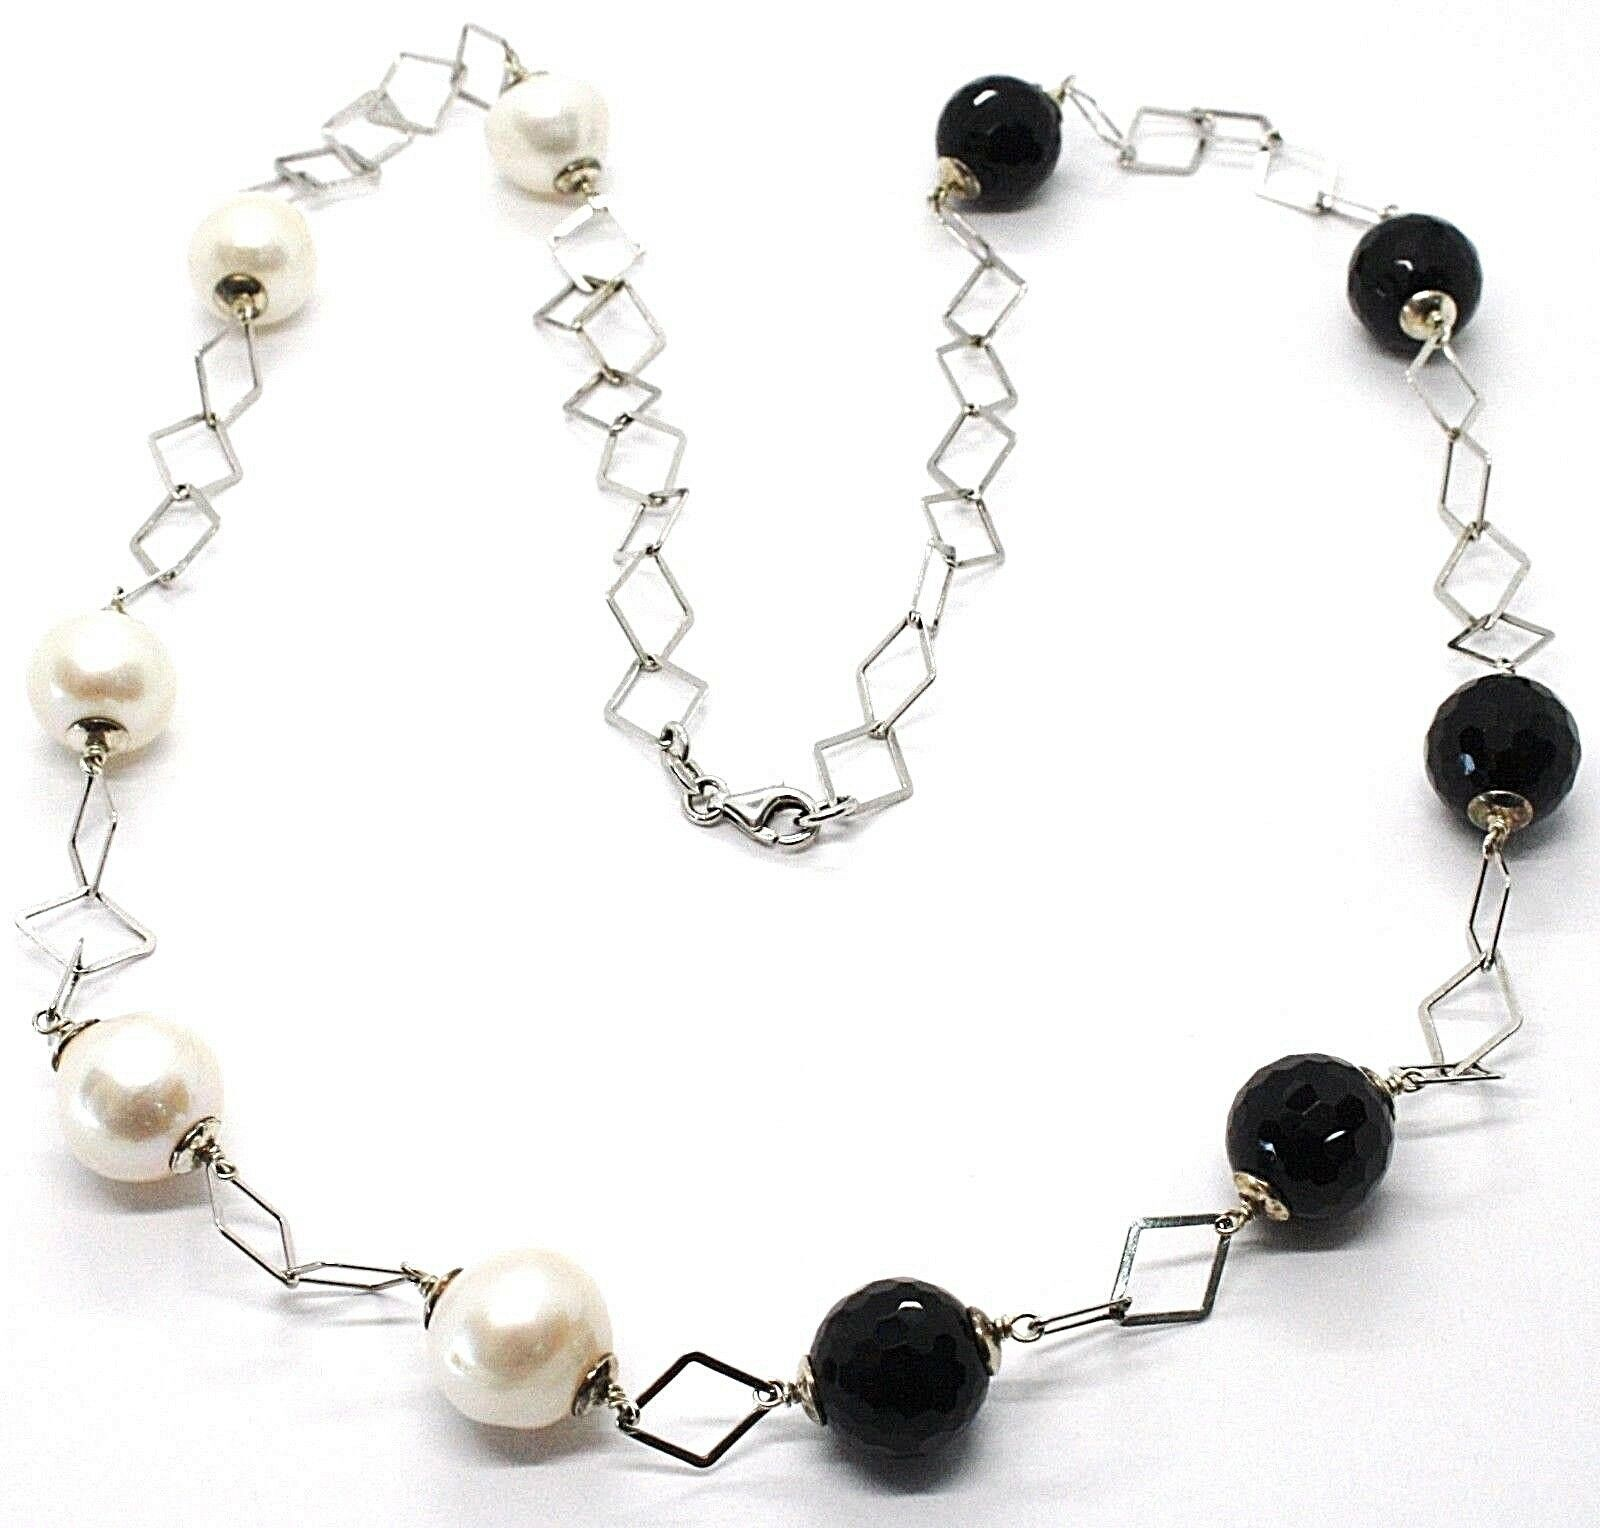 Primary image for Necklace Silver 925, Onyx Black Faceted, Pearls, 62 cm, Chain Rhombuses